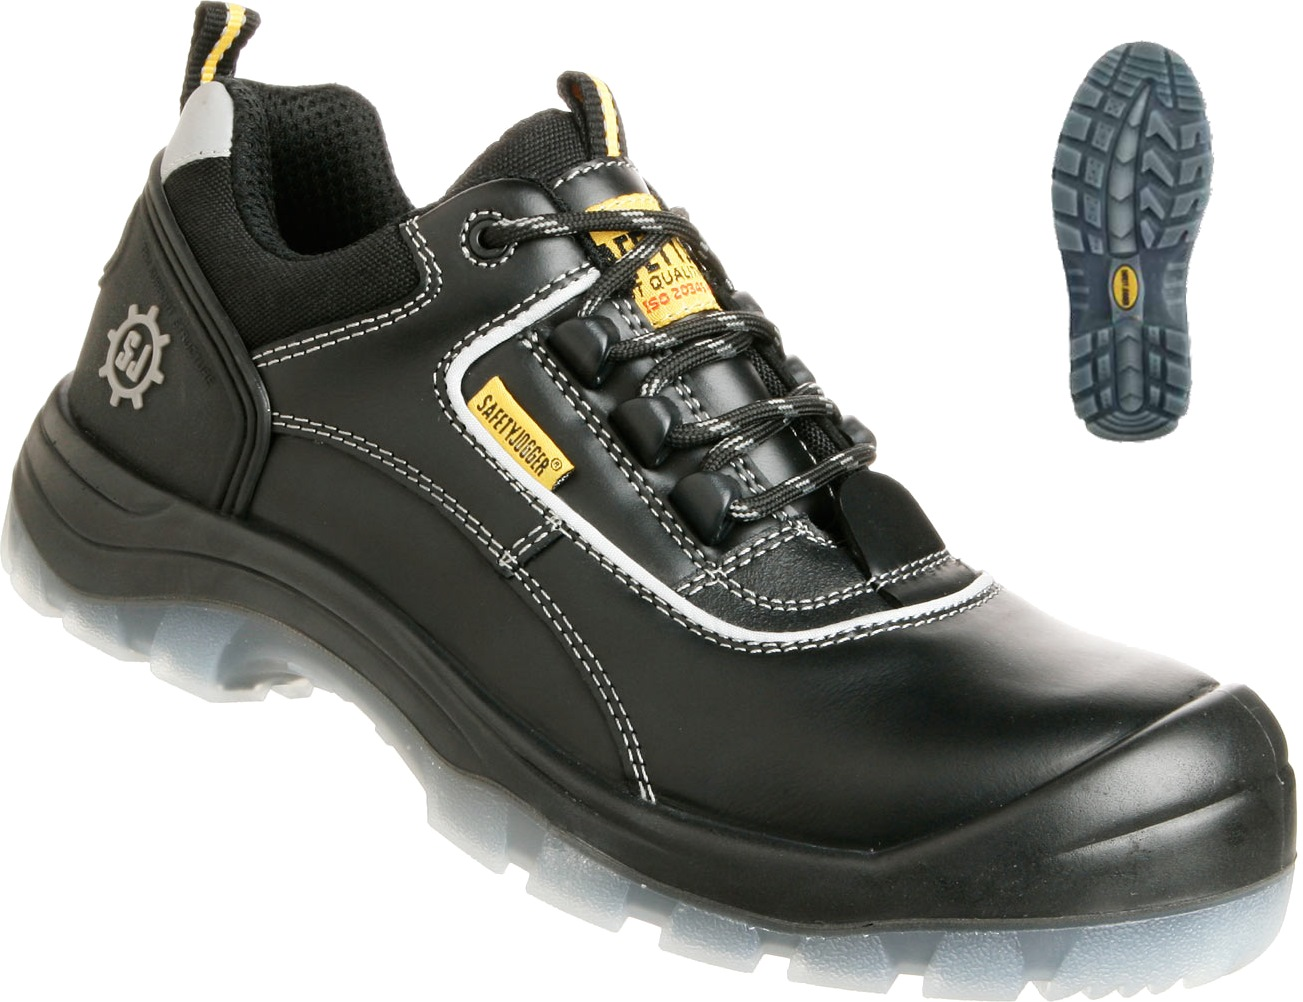 Safety Jogger Cosmos S3 Src Metal Free Safety Boot Highly Polished Boots Men's Shoes